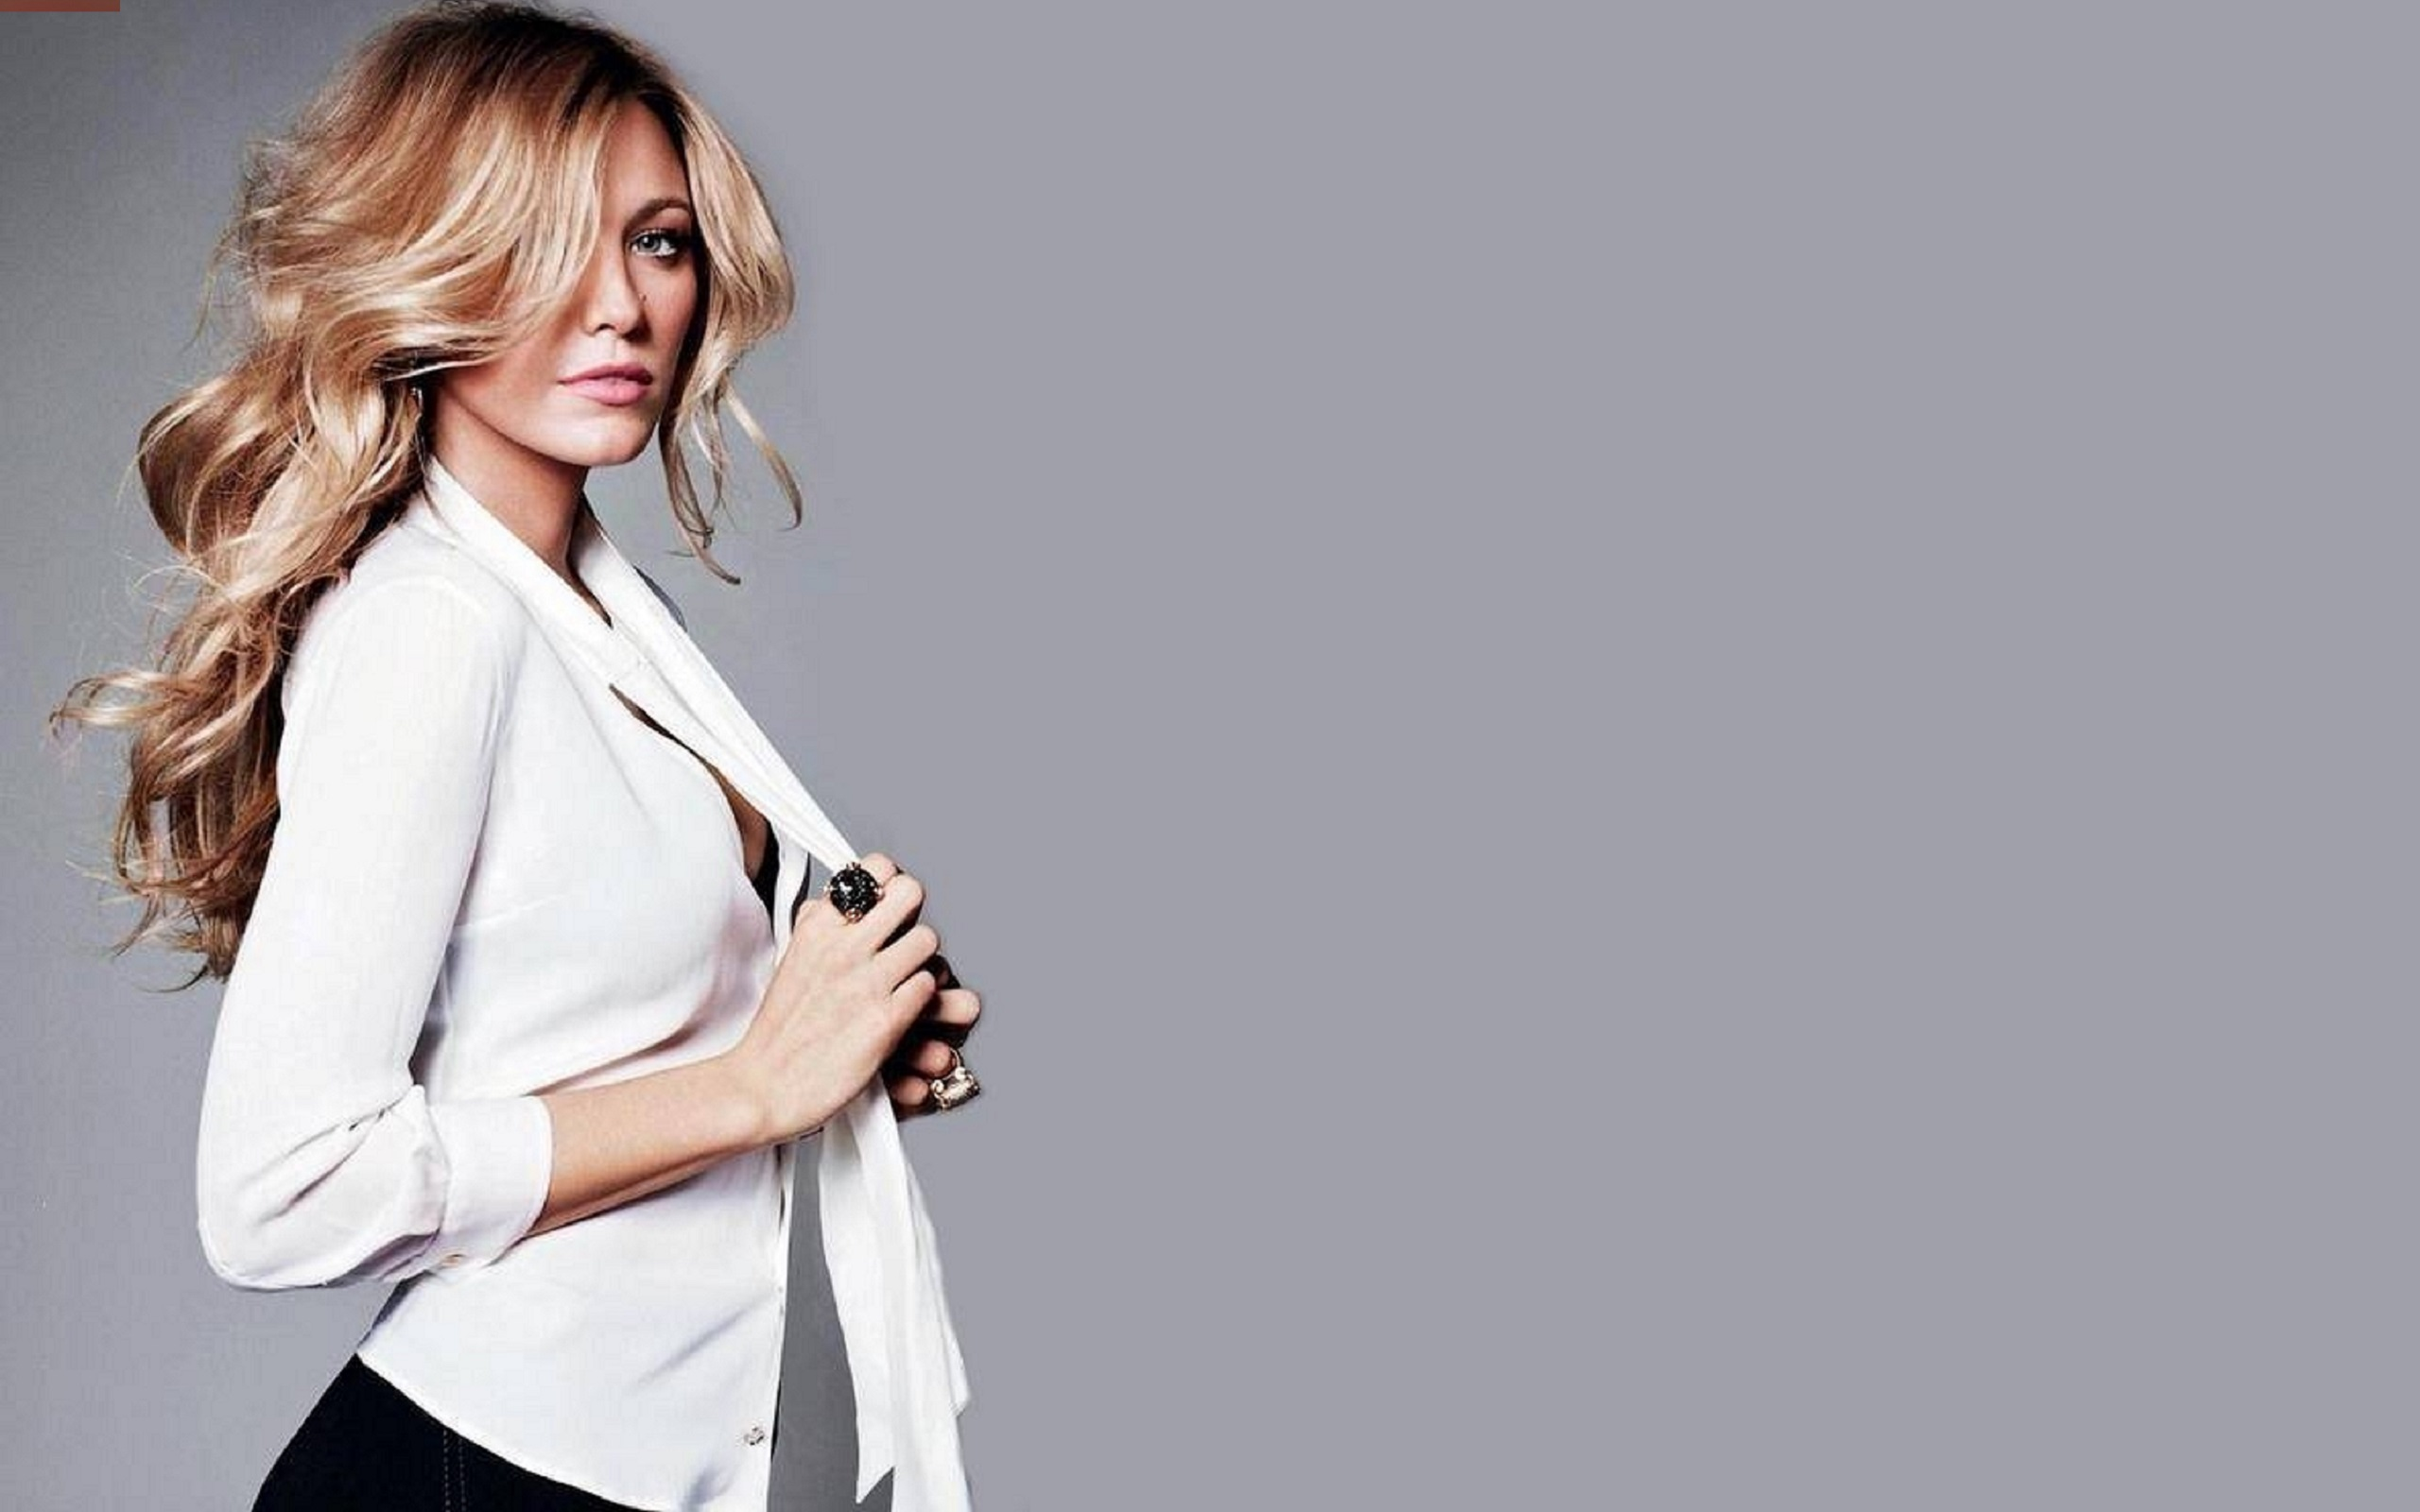 Free Download Blake Lively Wallpaper Hd Wallpapers 2560x1600 For Your Desktop Mobile Tablet Explore 93 Blake Lively Wallpapers Blake Lively Wallpapers Blake Backgrounds Blake Griffin Wallpapers